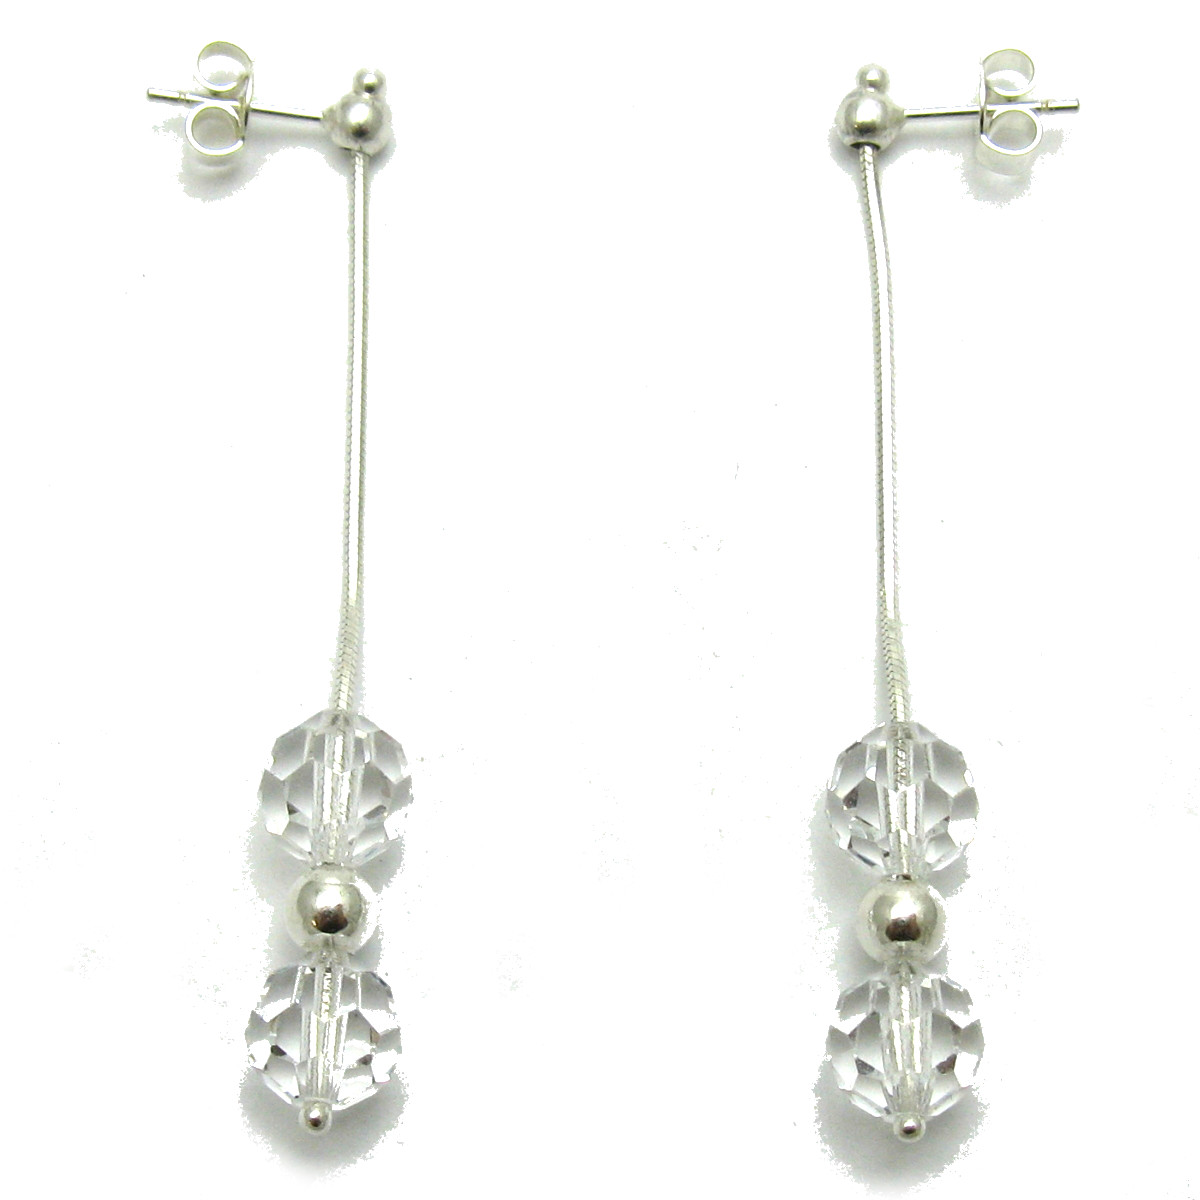 Silver earrings - E000003C